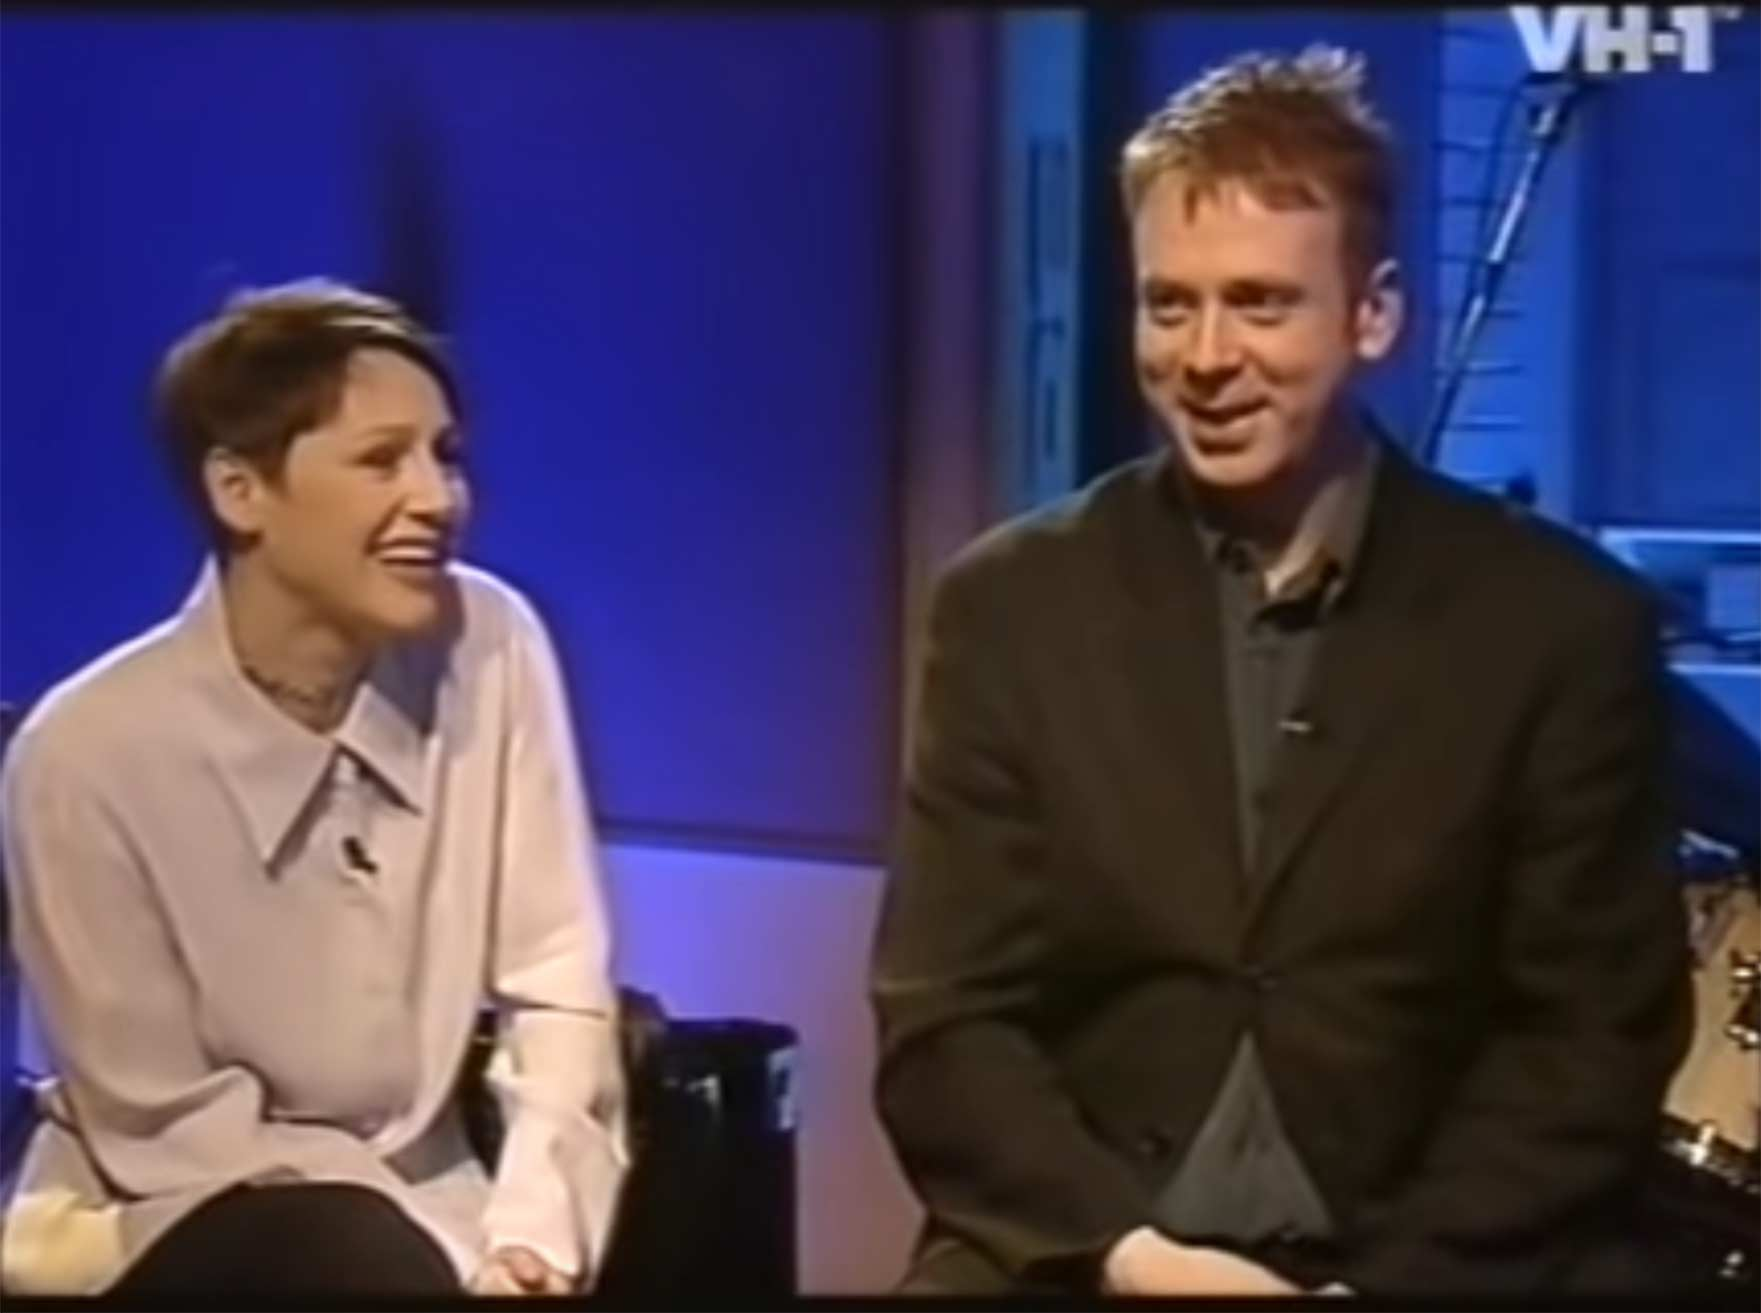 1996 VH1 interview with Liz and Simon